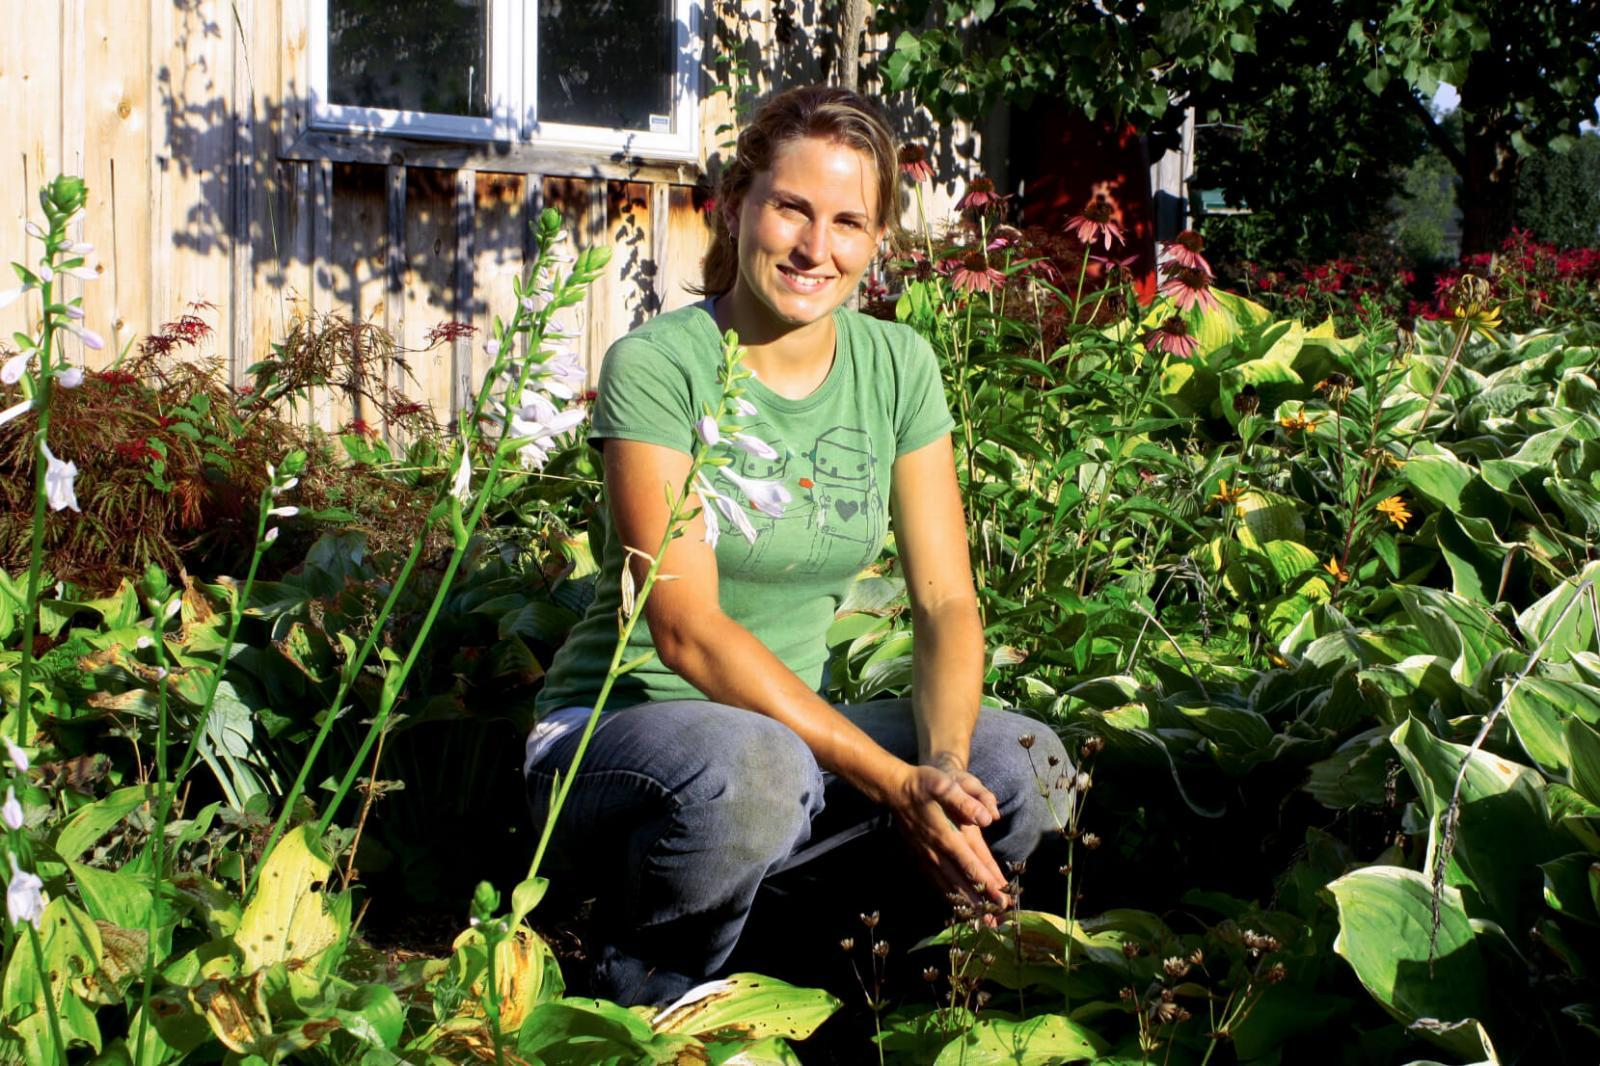 Summer intern Marette Sharpe has ideas to promote horticulture's future.